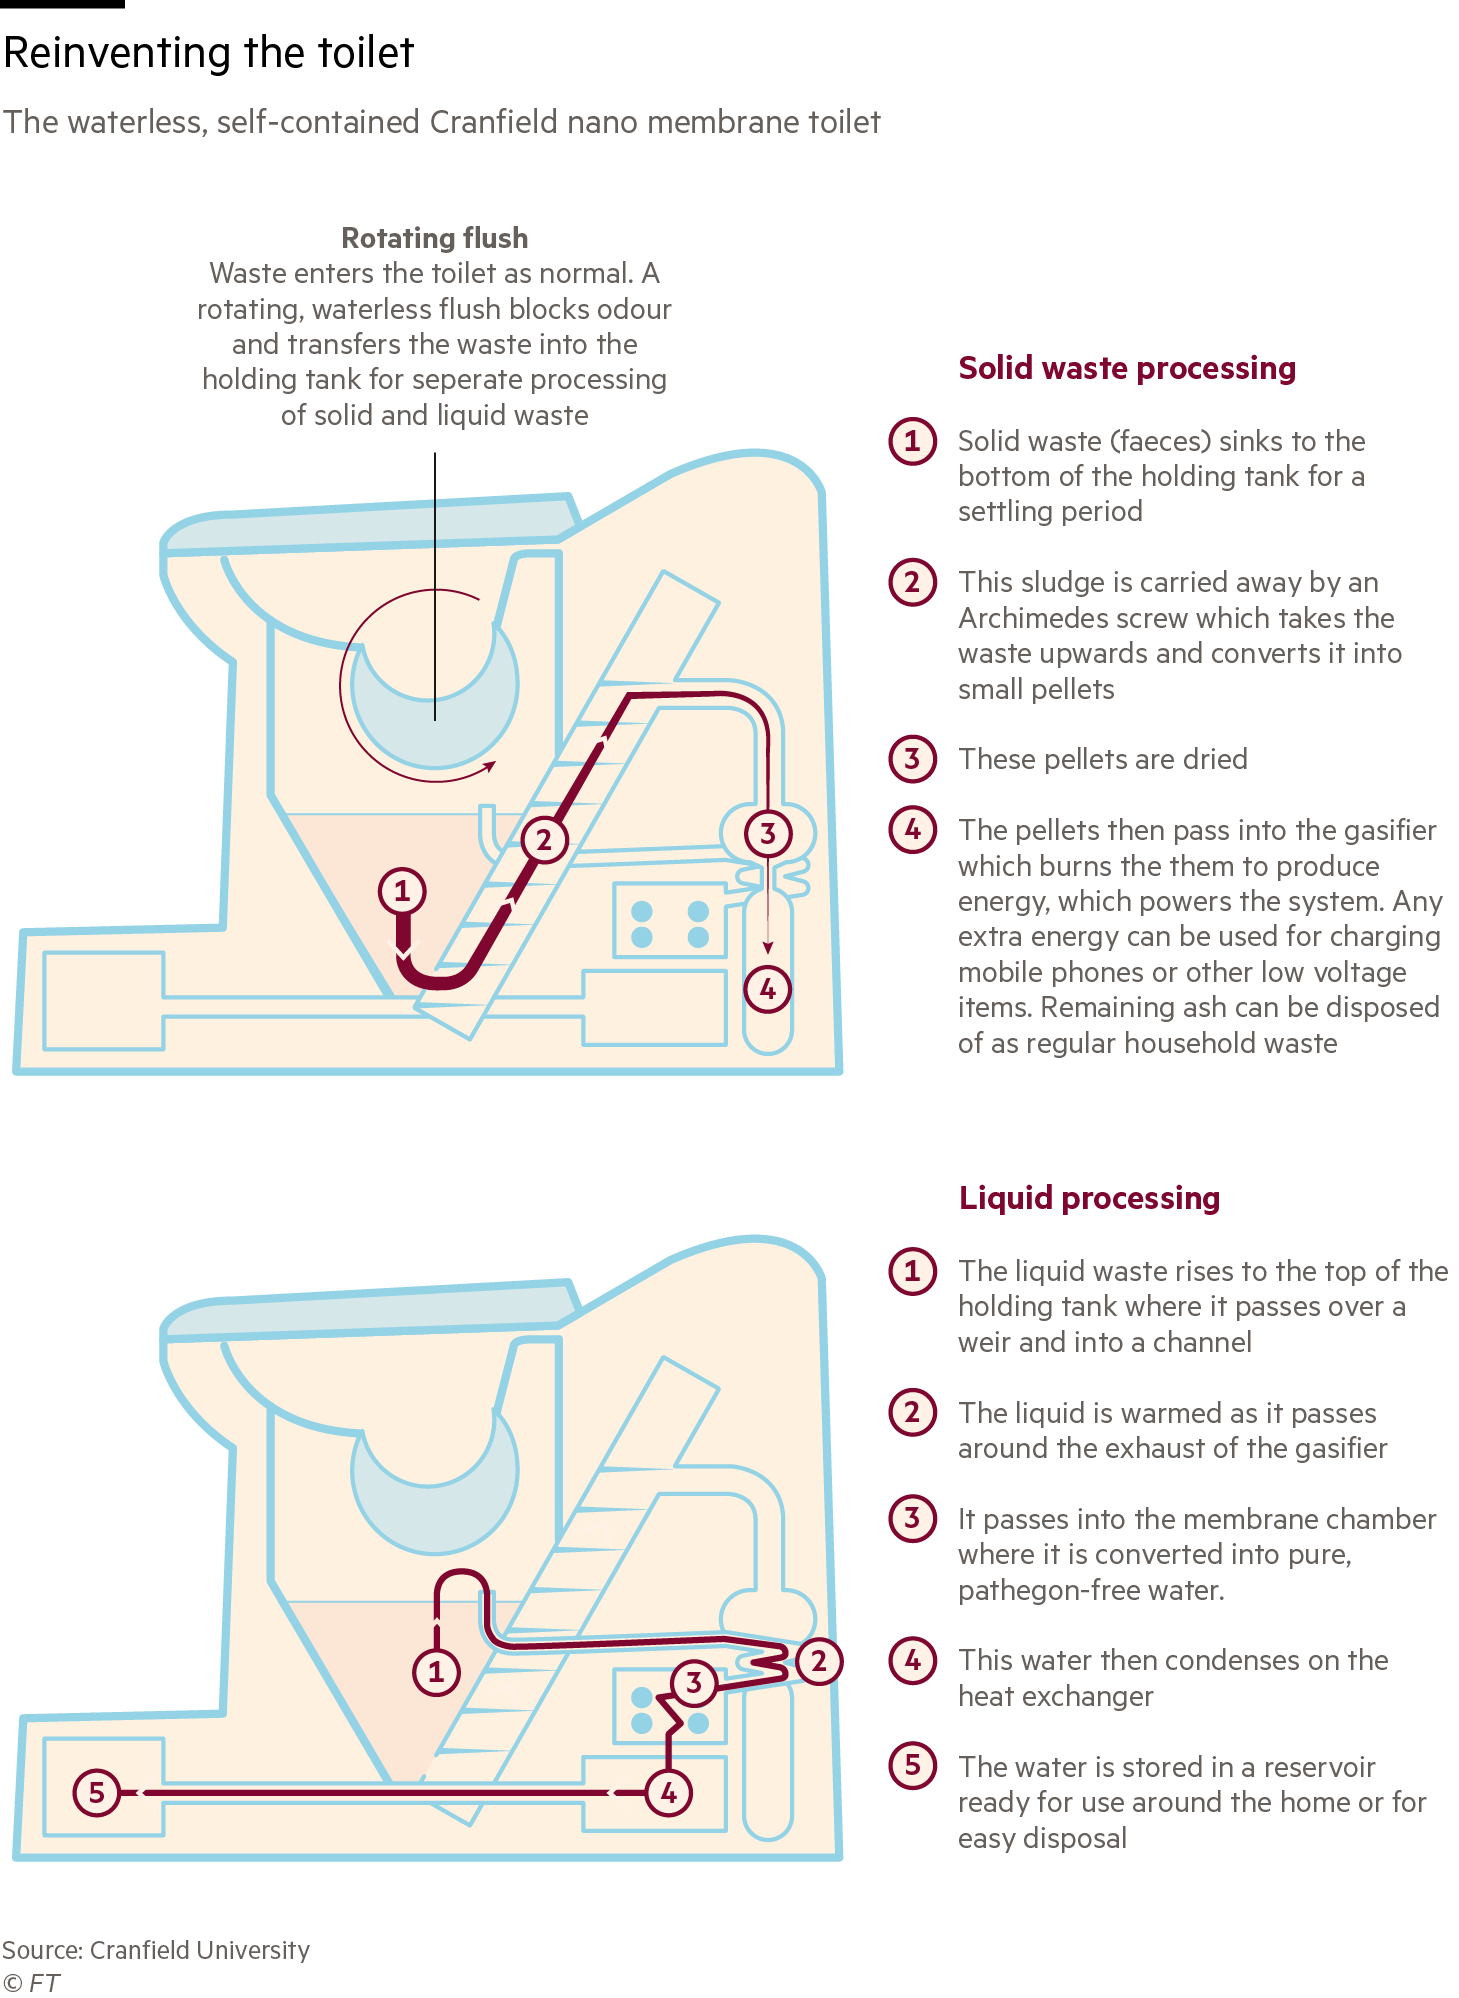 Graphic showing how the nano membrane toilet works